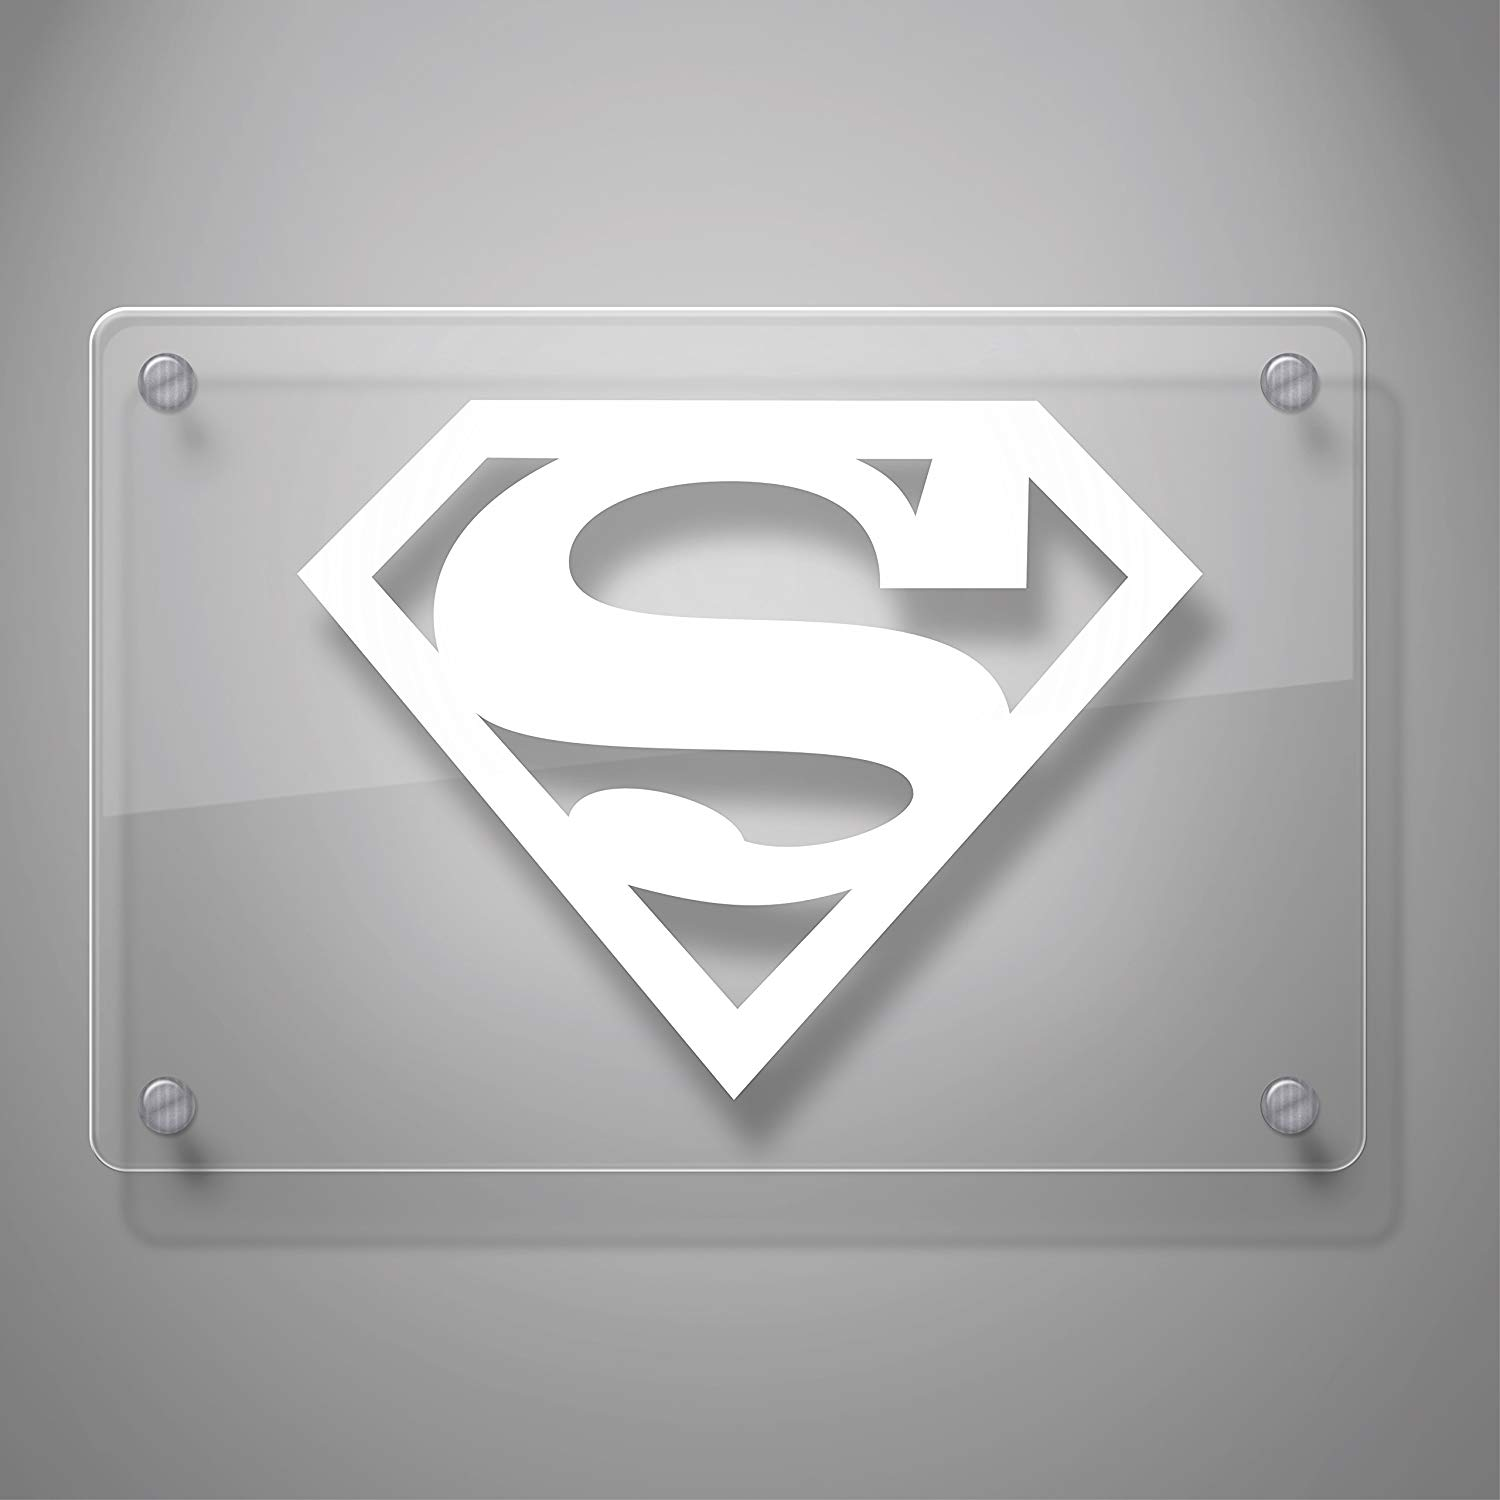 Superman Decal Sticker for Car Window Laptop and More 805 4 quot x 5 1 quot White in Car Stickers from Automobiles amp Motorcycles